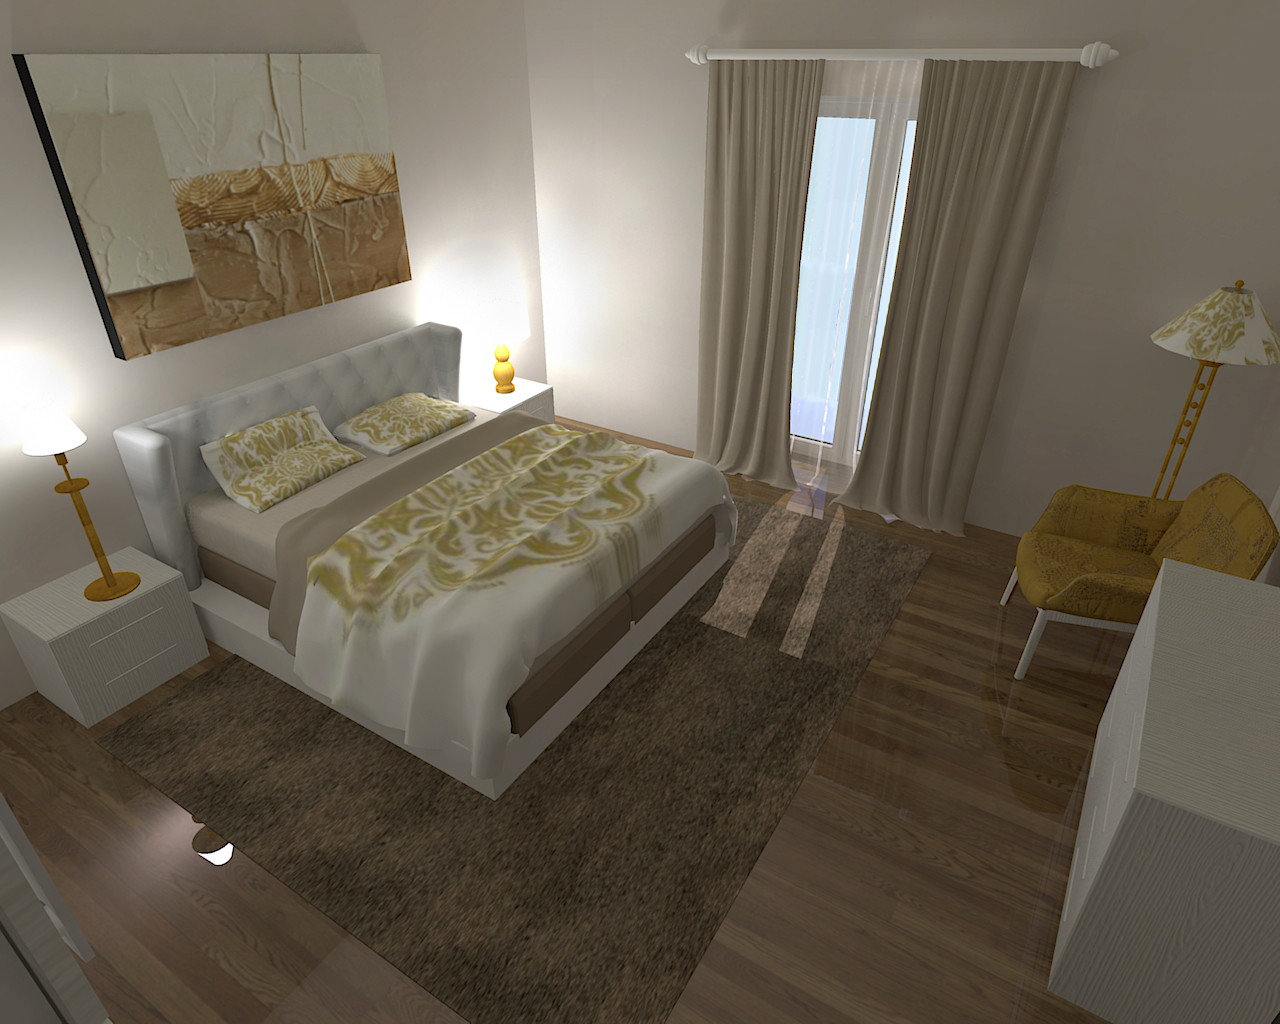 Camera Da Letto Con Parquet. Top Camera Da Letto With Camera Da ...